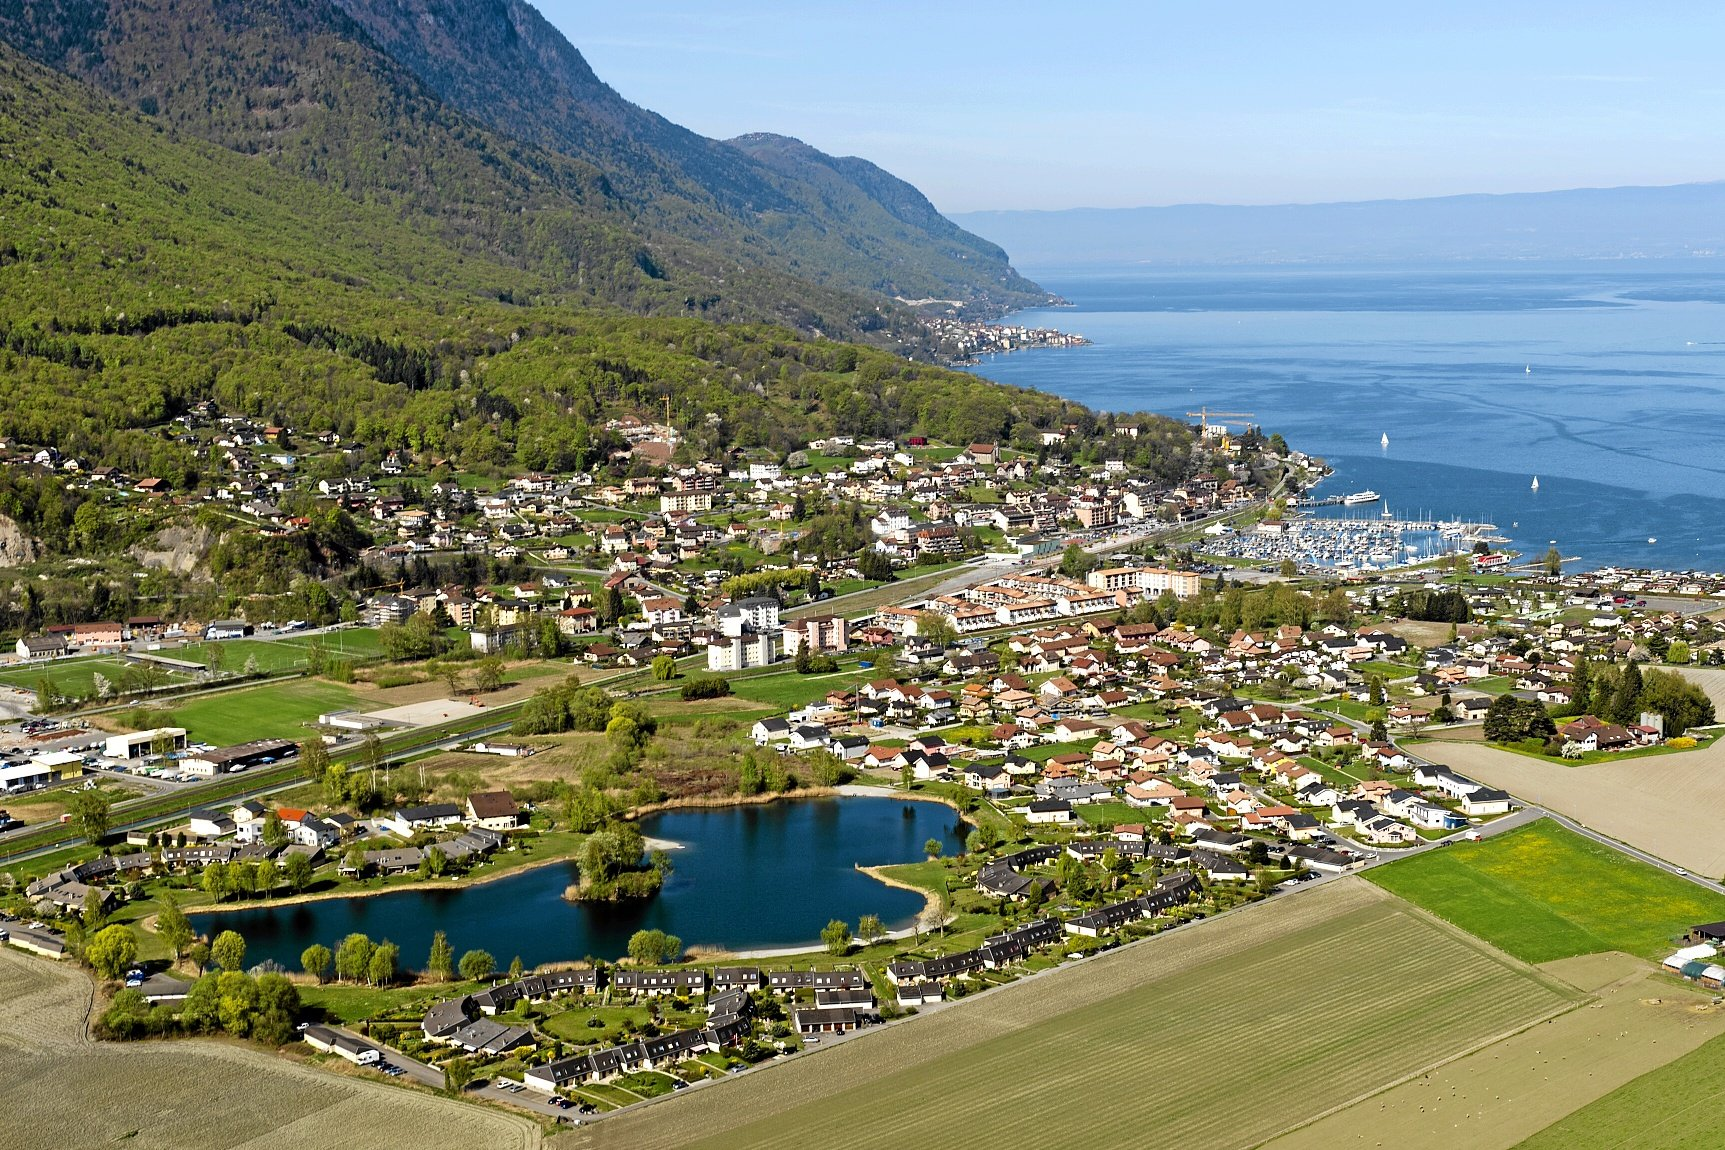 From the base of the Dents du Midi to the shores of Lake Geneva, on this ninth stage you will discover the Vallée d'Illiez on its left side as you descend into the Rhone Valley. You reach Lake Geneva along the Stockalper canal on the banks of the Rhone River.